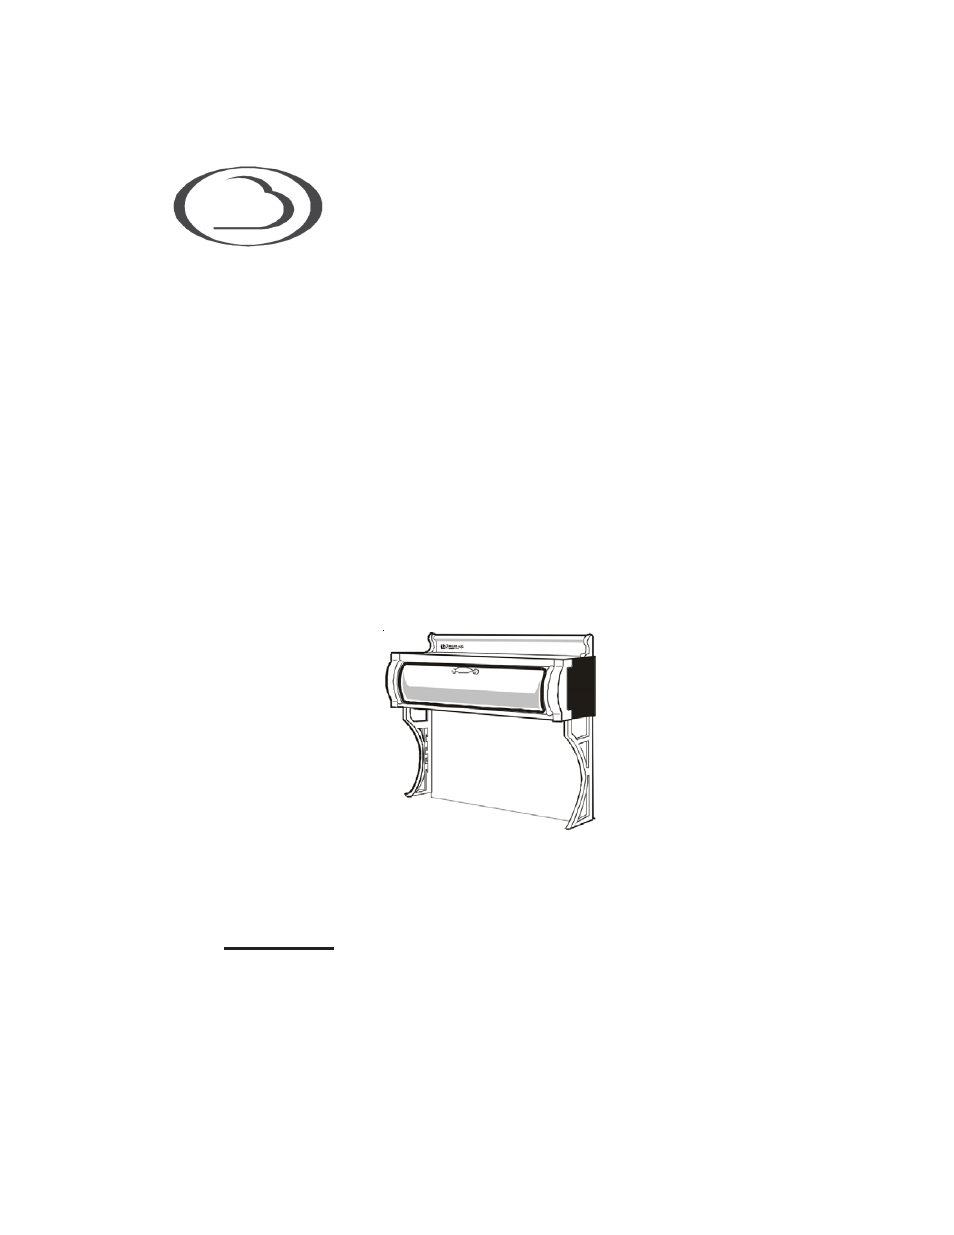 Heartland 2602 User Manual | 10 pages | Also for: 4210, 4200, 620, 6210,  8200, 5210, 1902, 1903, 8210, 7200, 9200, 2603